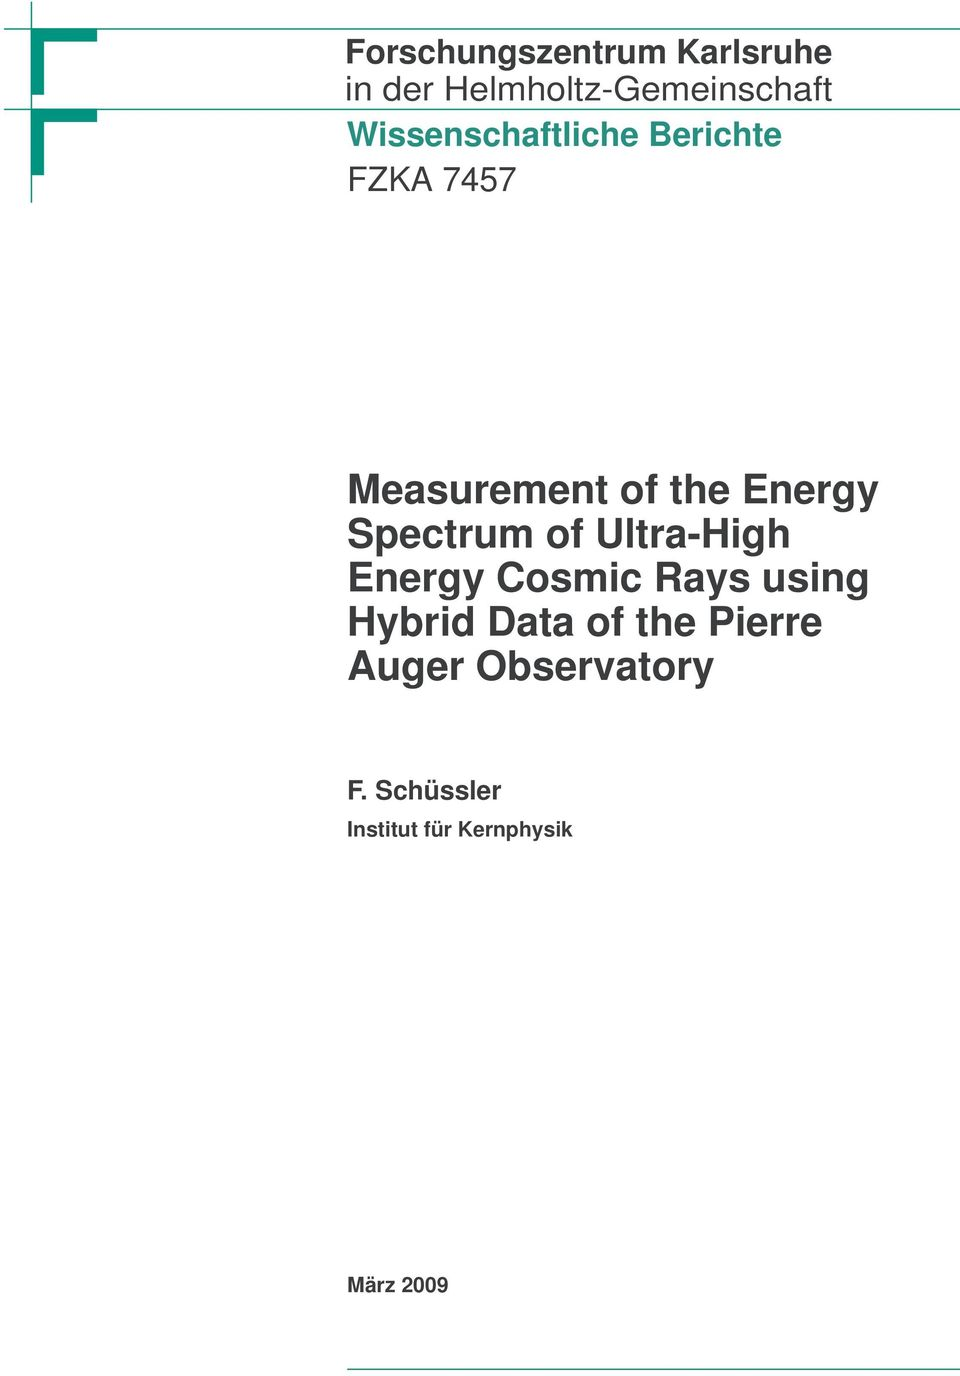 Spectrum of Ultra-High Energy Cosmic Rays using Hybrid Data of